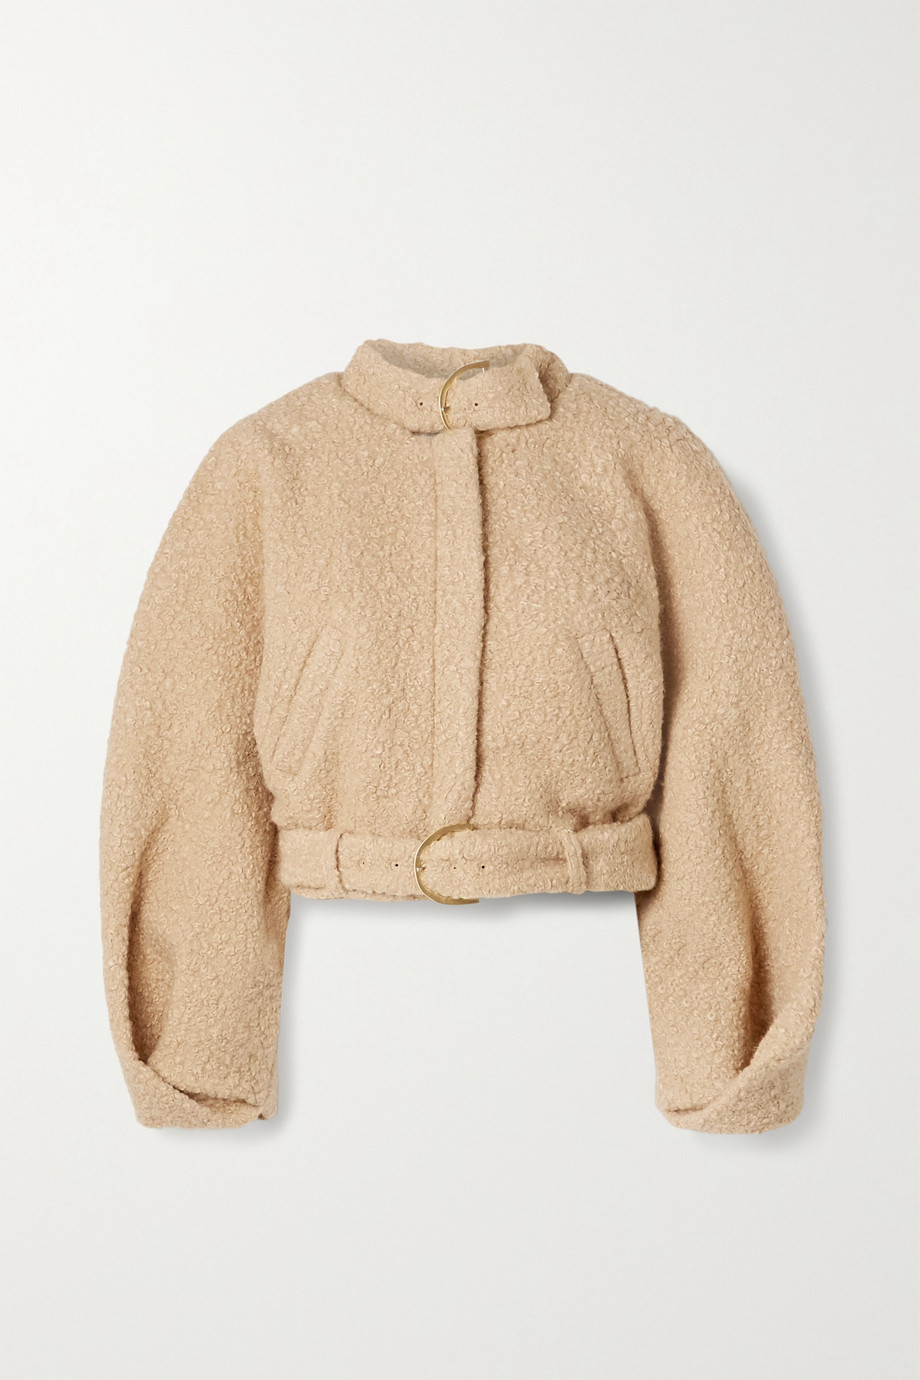 Cult Gaia Joan buckled cropped bouclé bomber jacket